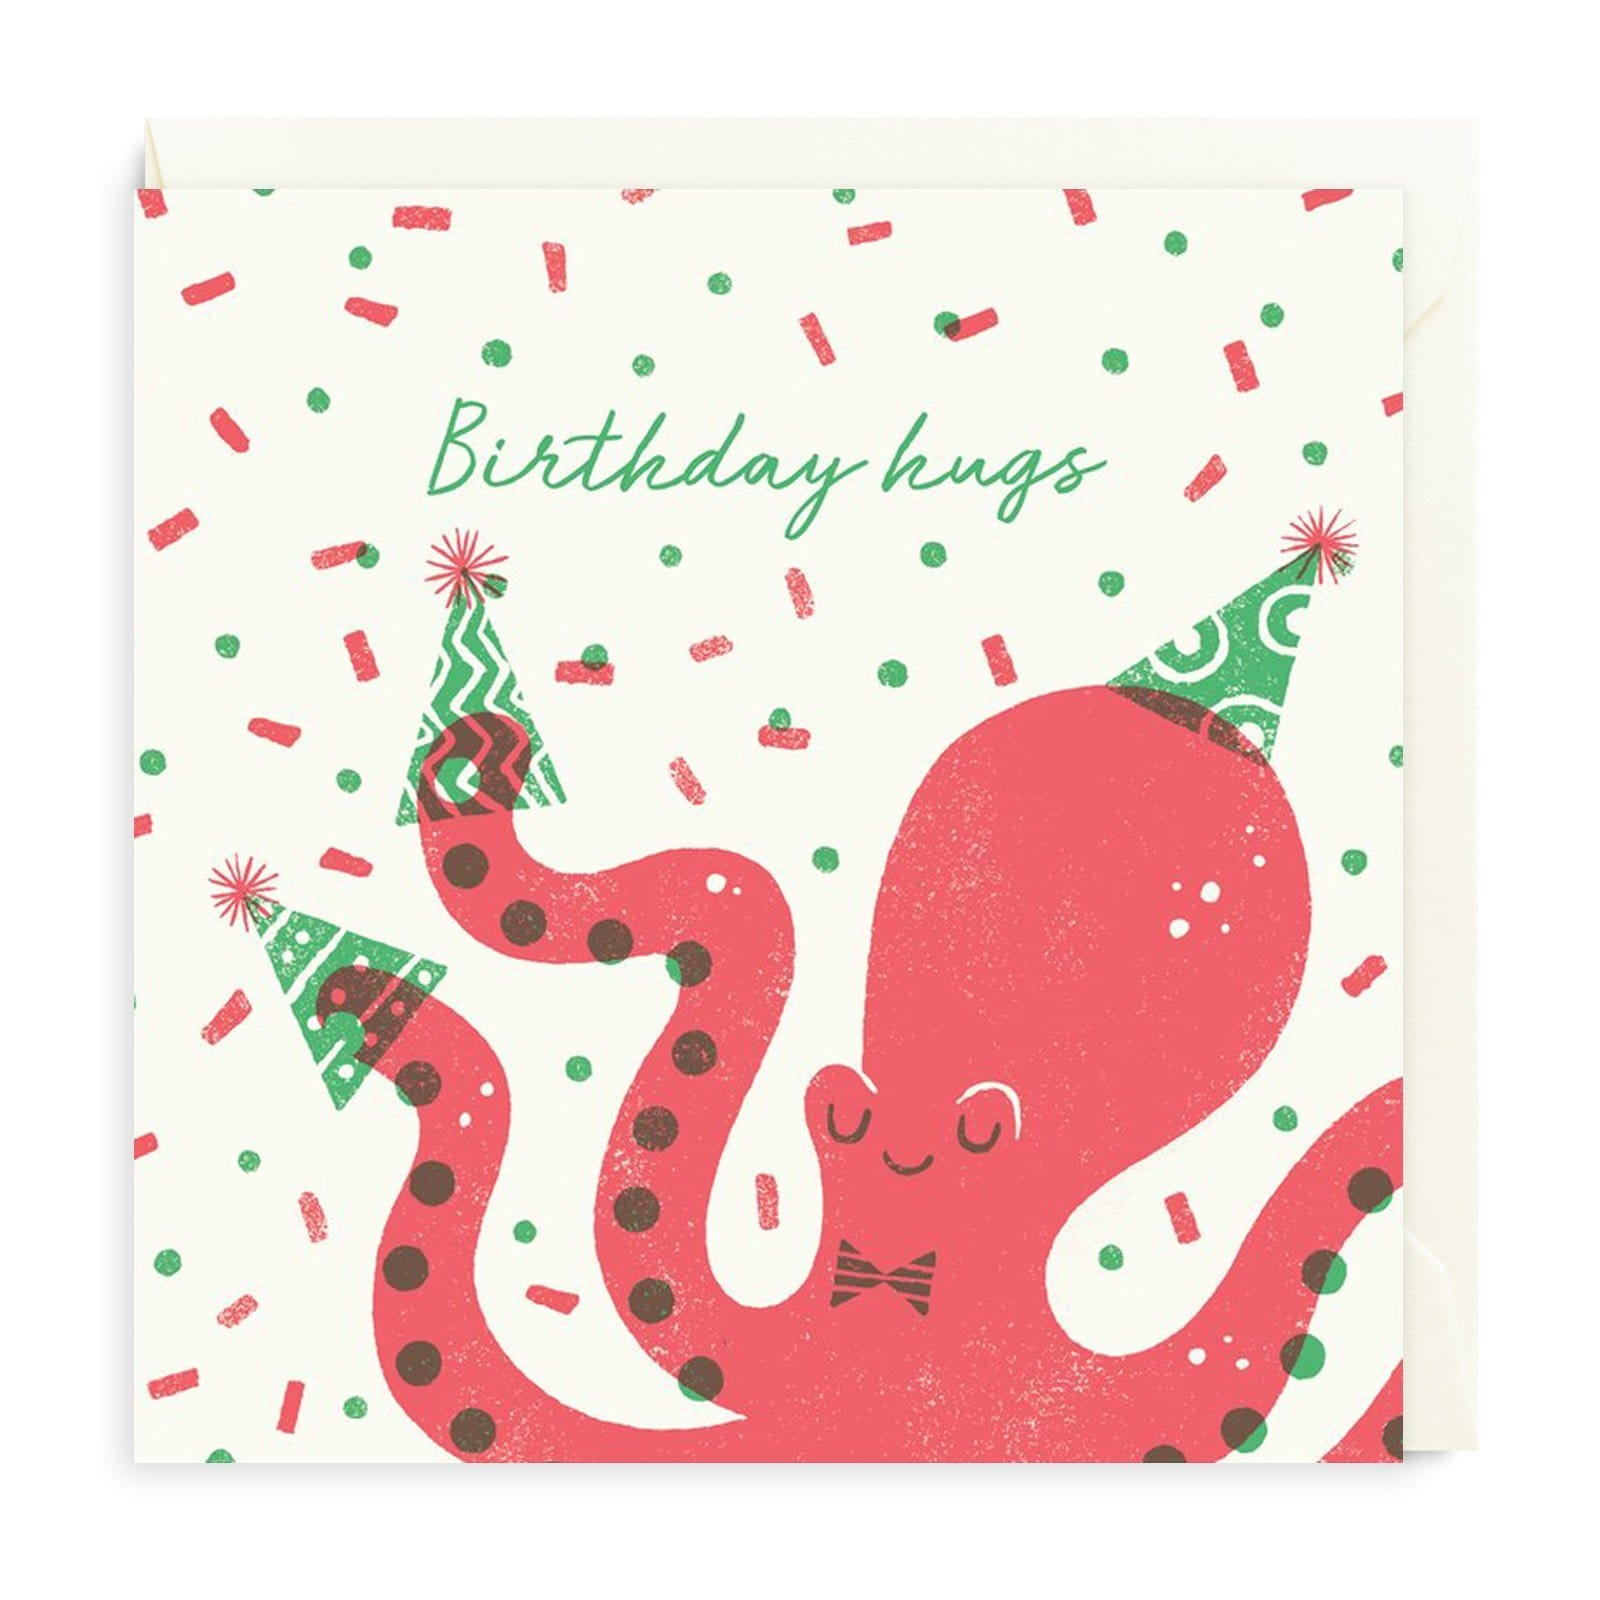 Birthday Hugs Octopus Square Greeting Card